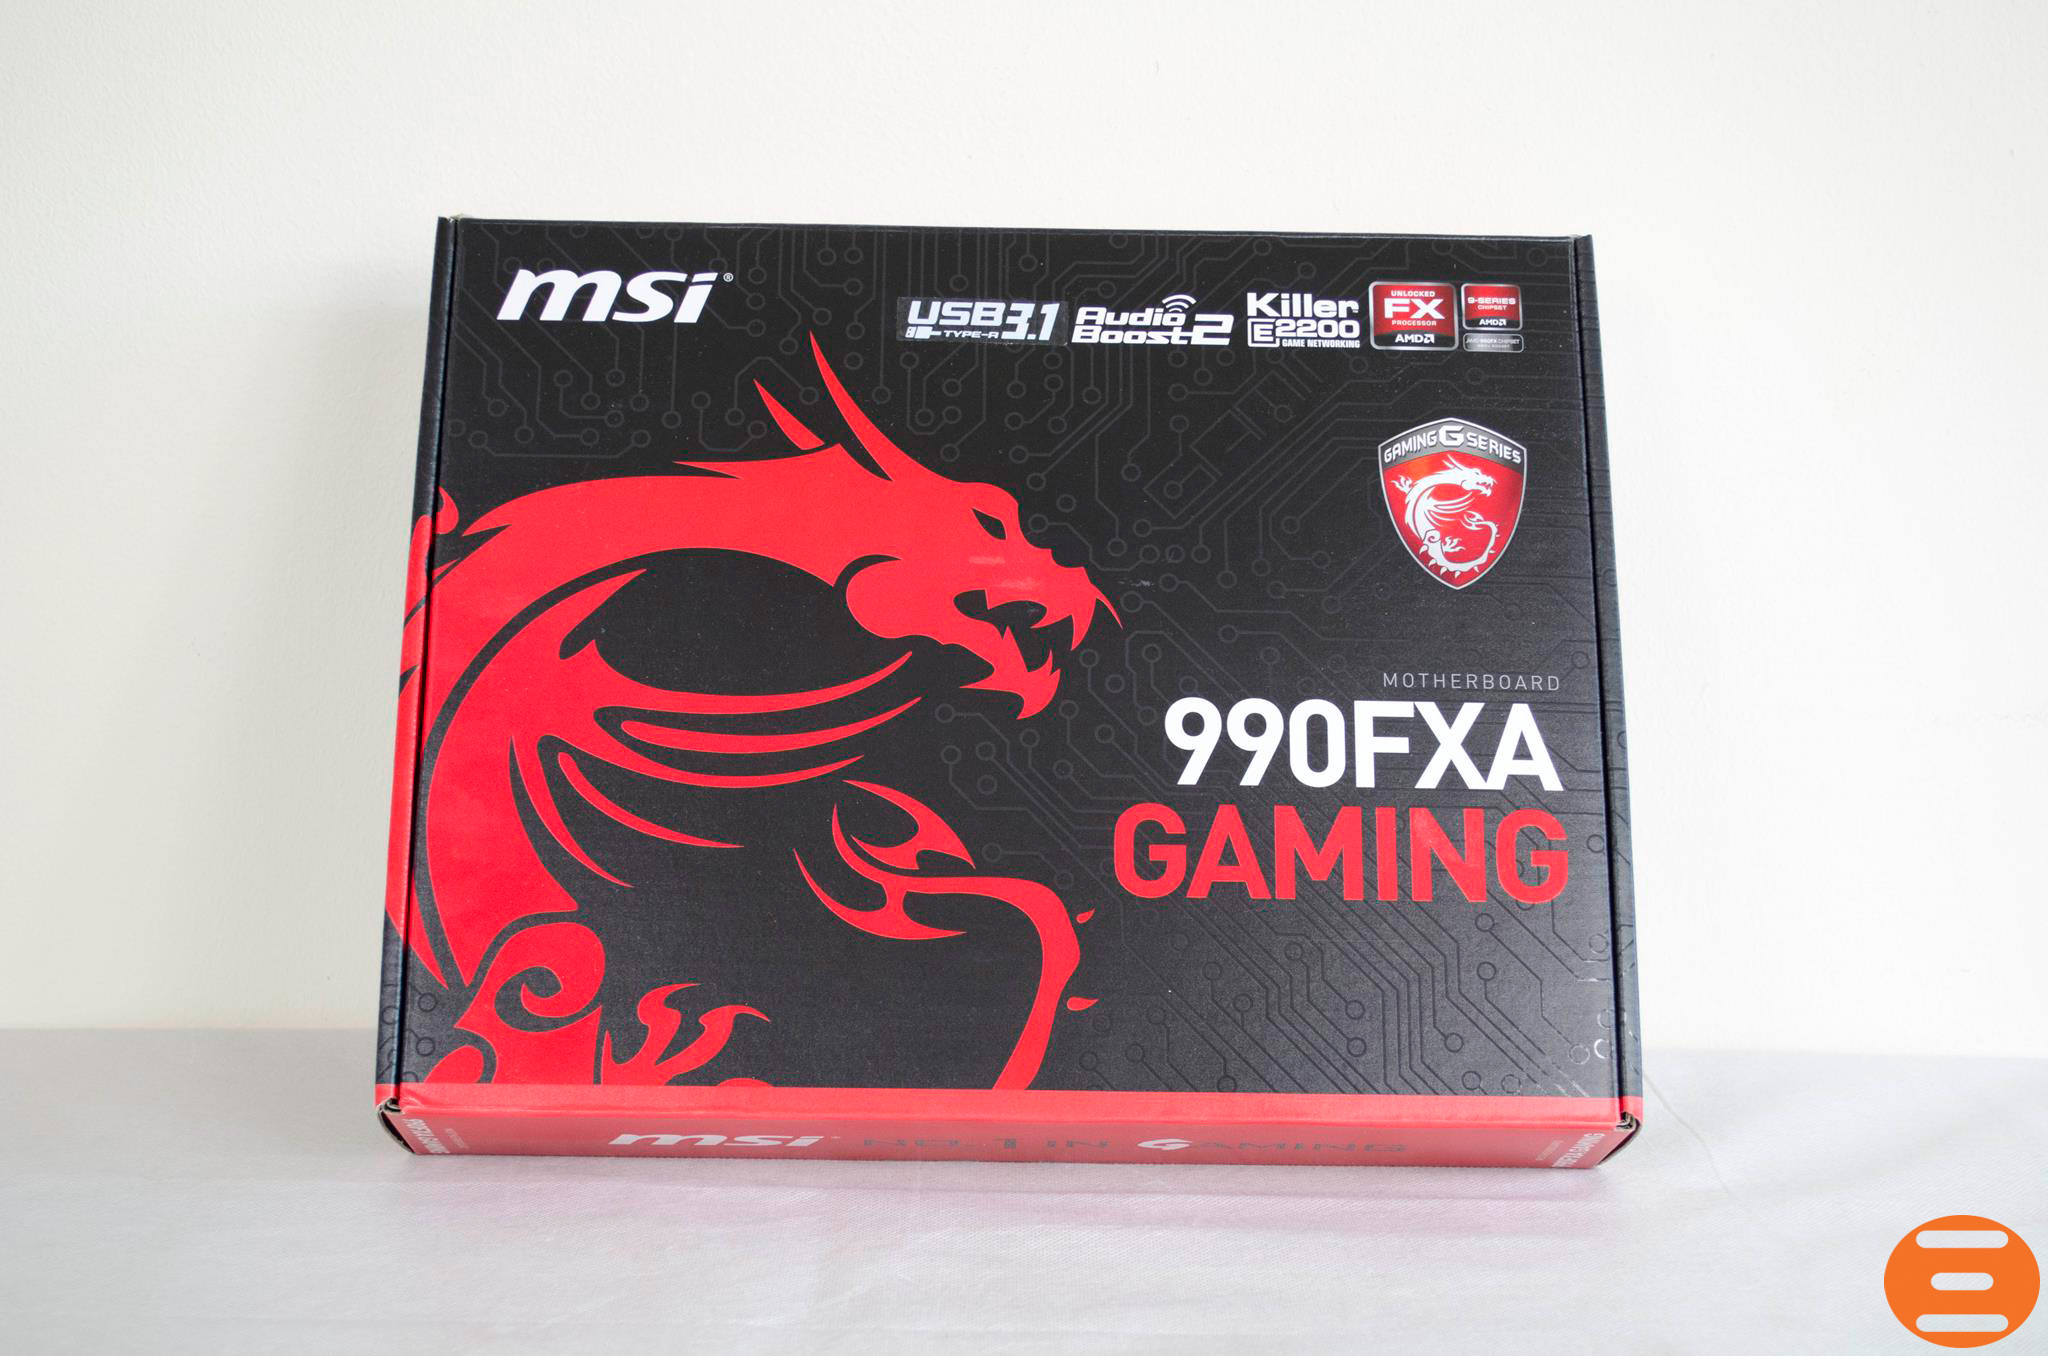 MSI-990FXA-Gaming-Motherboard